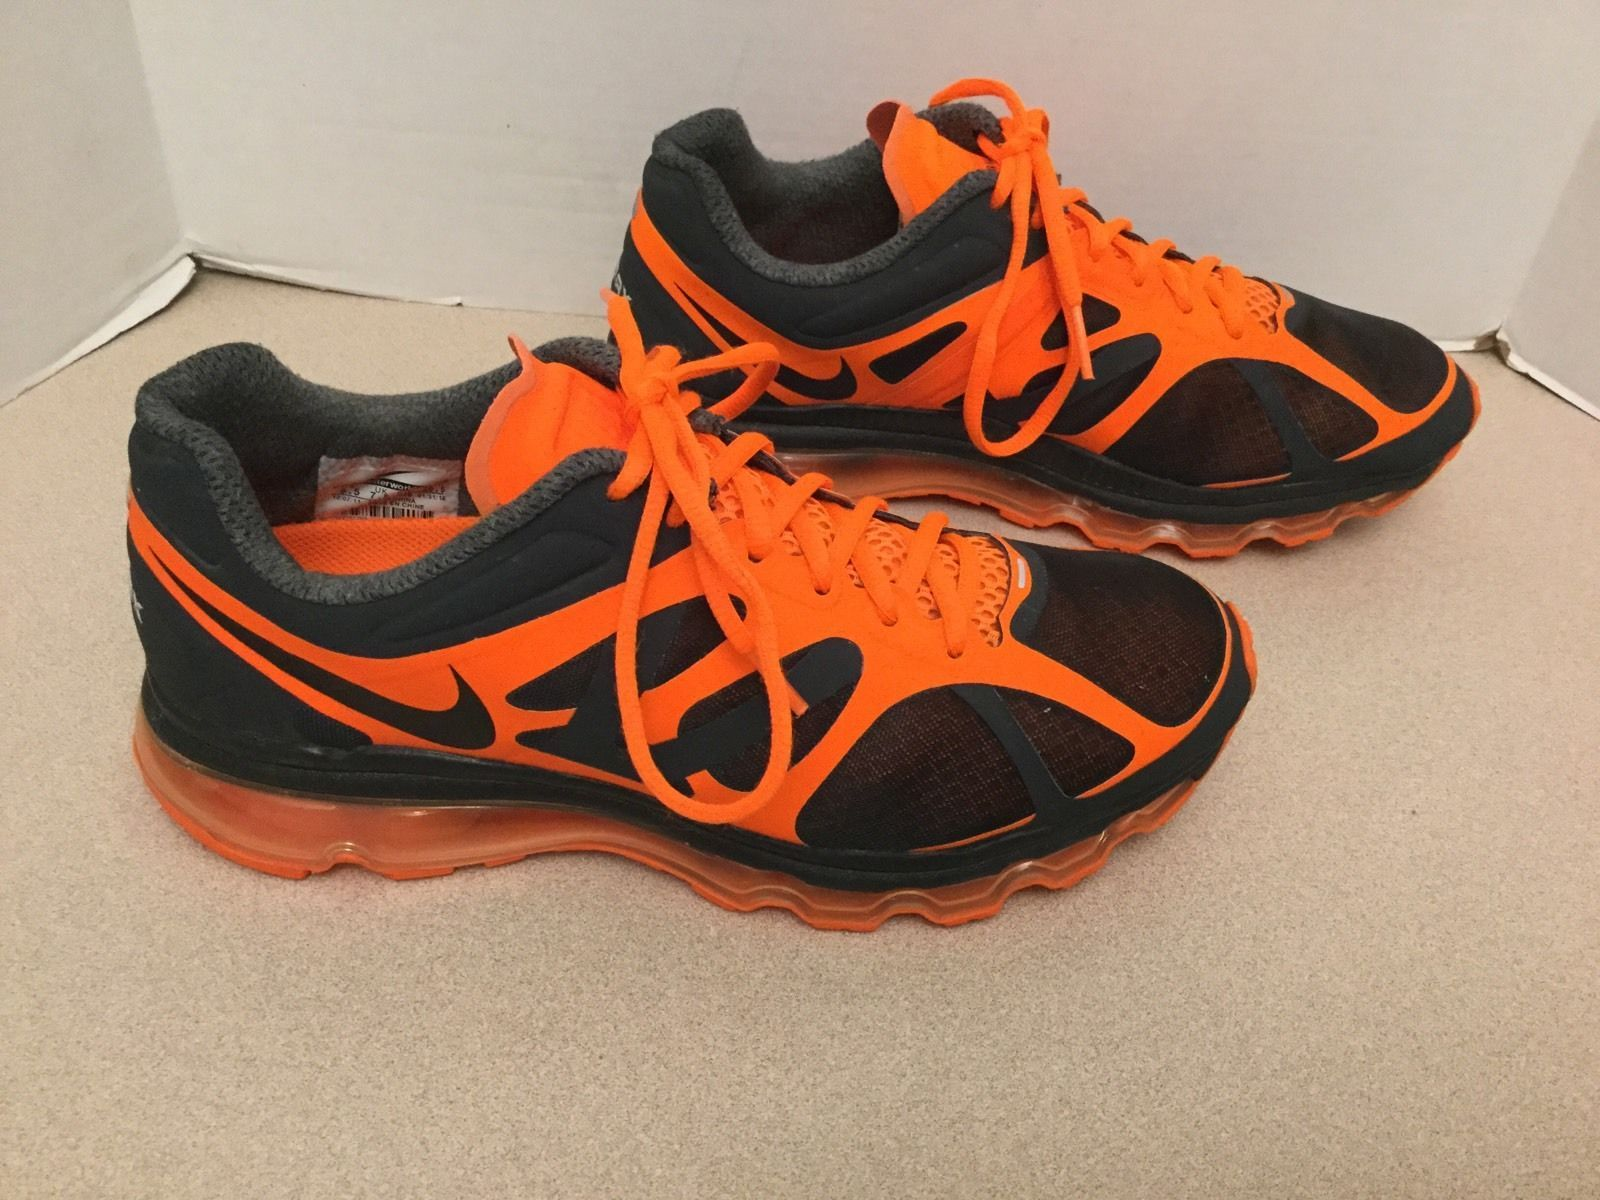 Mens Nike Air Max Neon Orange Running Shoes. Size 8.5. Excellent Condition!